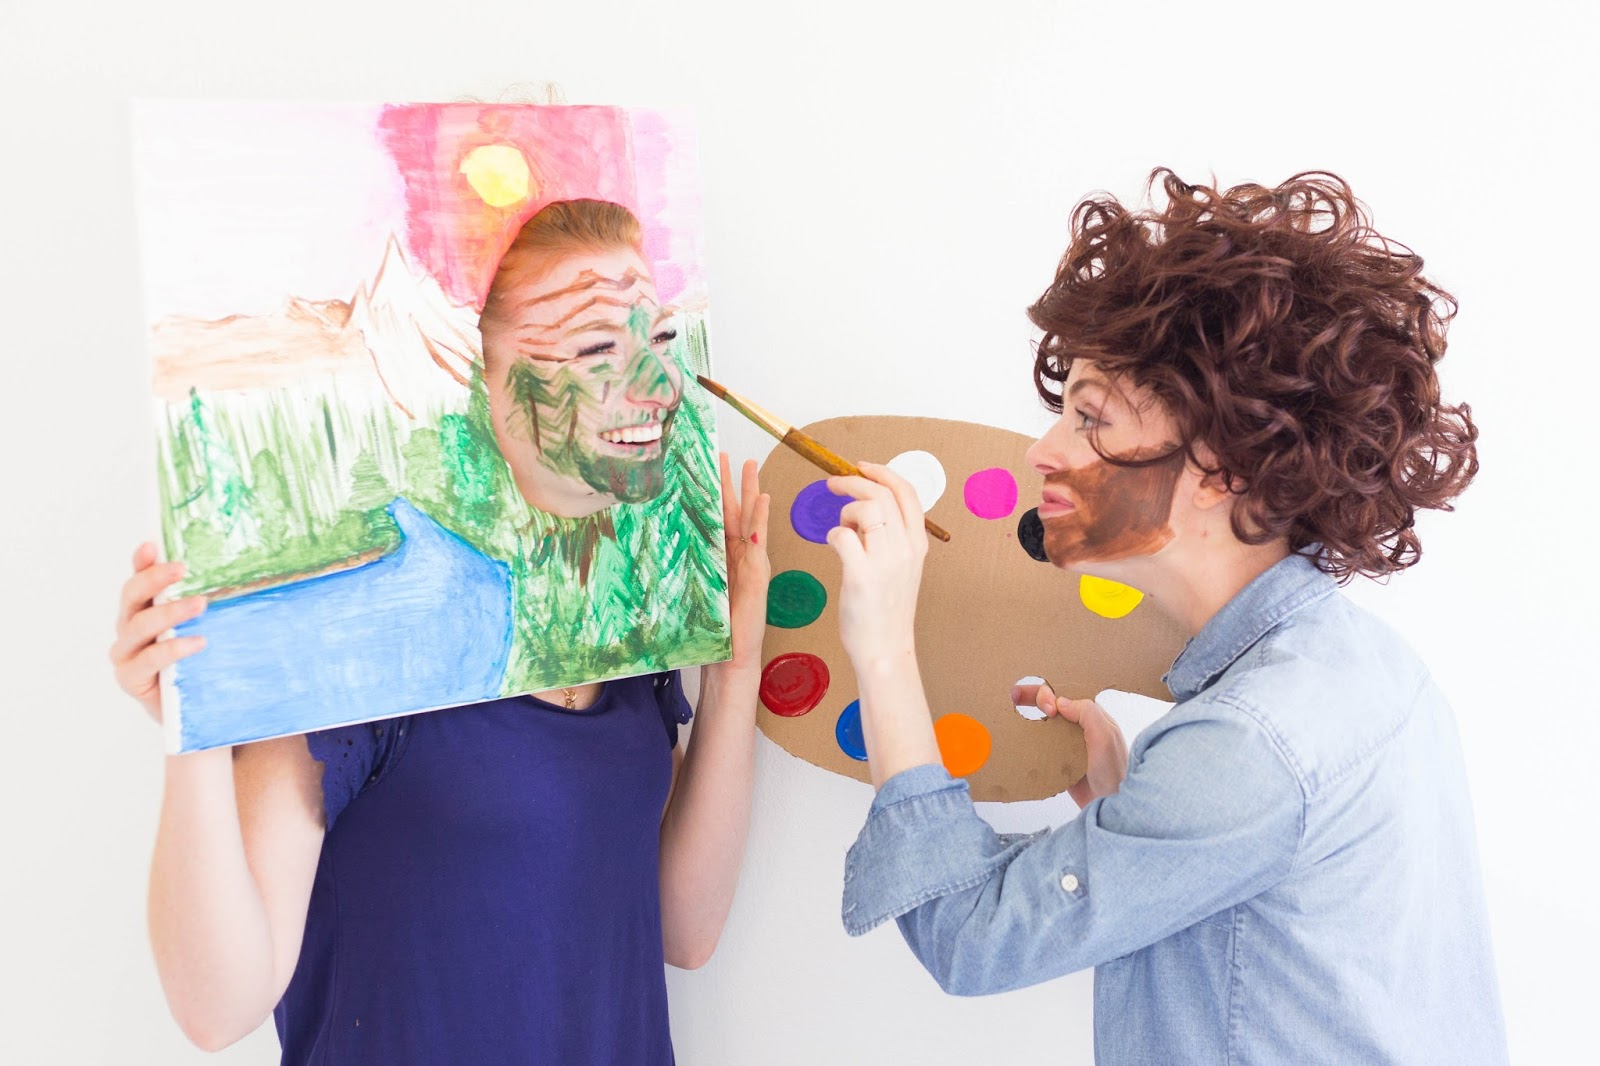 Do it yourself divas diy bob ross halloween costume with happy halloween costume ideas for best friends couples sisters brothers duos solutioingenieria Choice Image